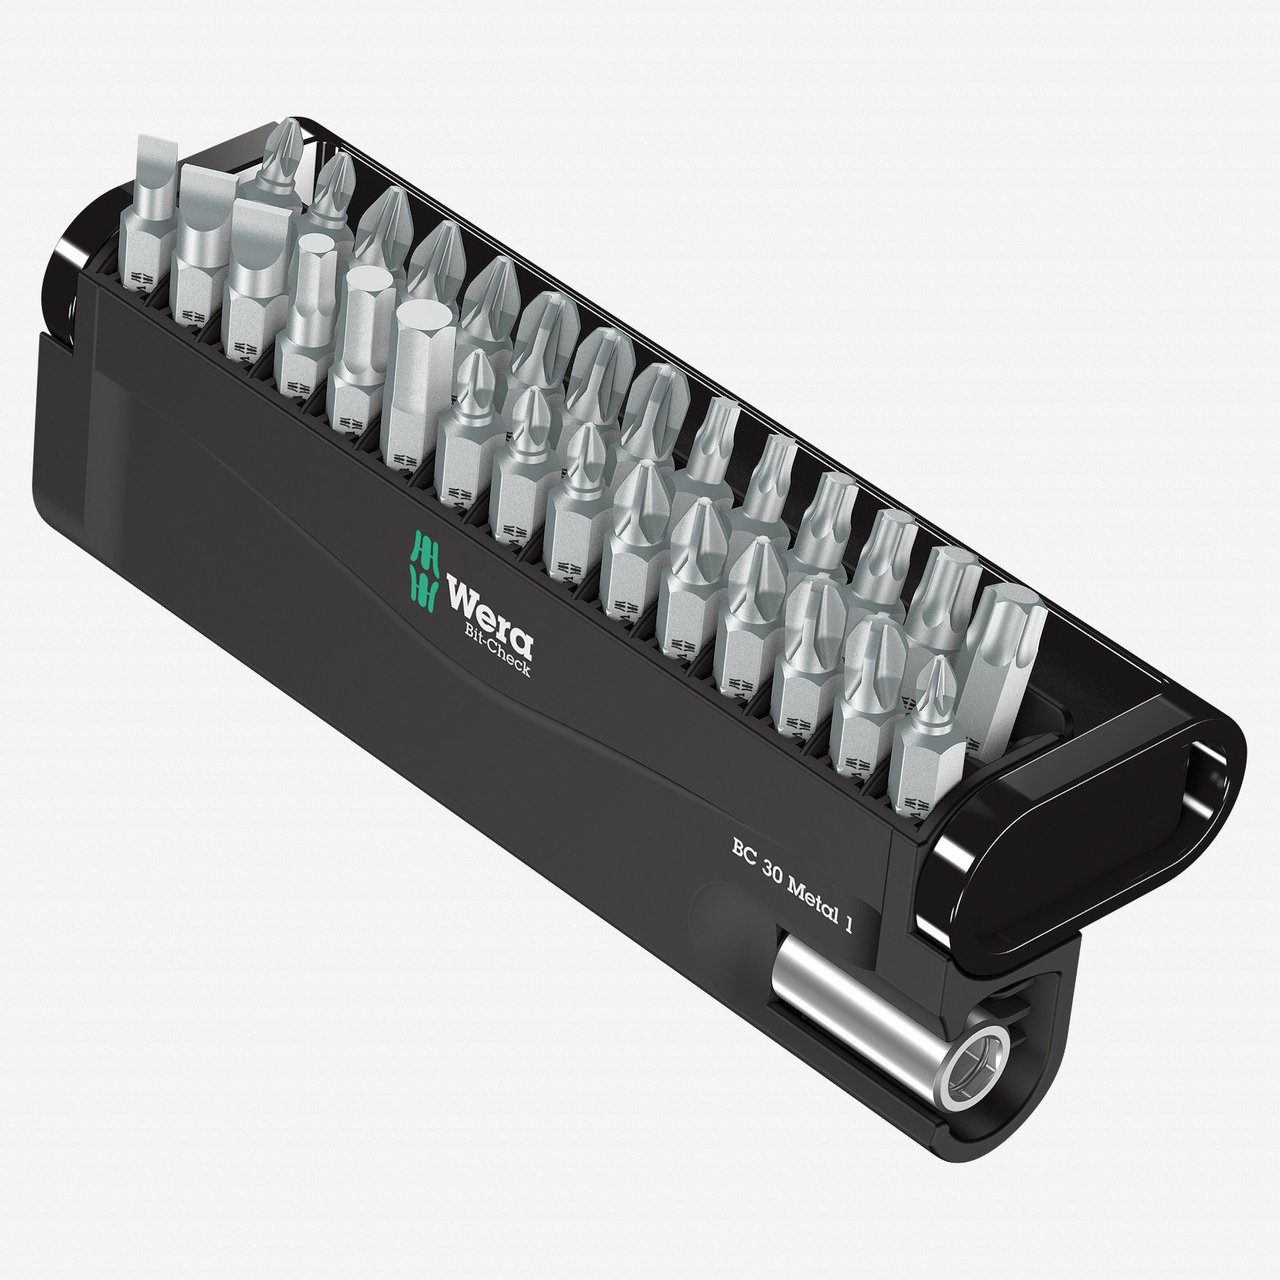 Wera 057434 Bit-Check 30 Metal 1 - PH, PZ, TX, Hex and Slotted Insert Bit Set - KC Tool